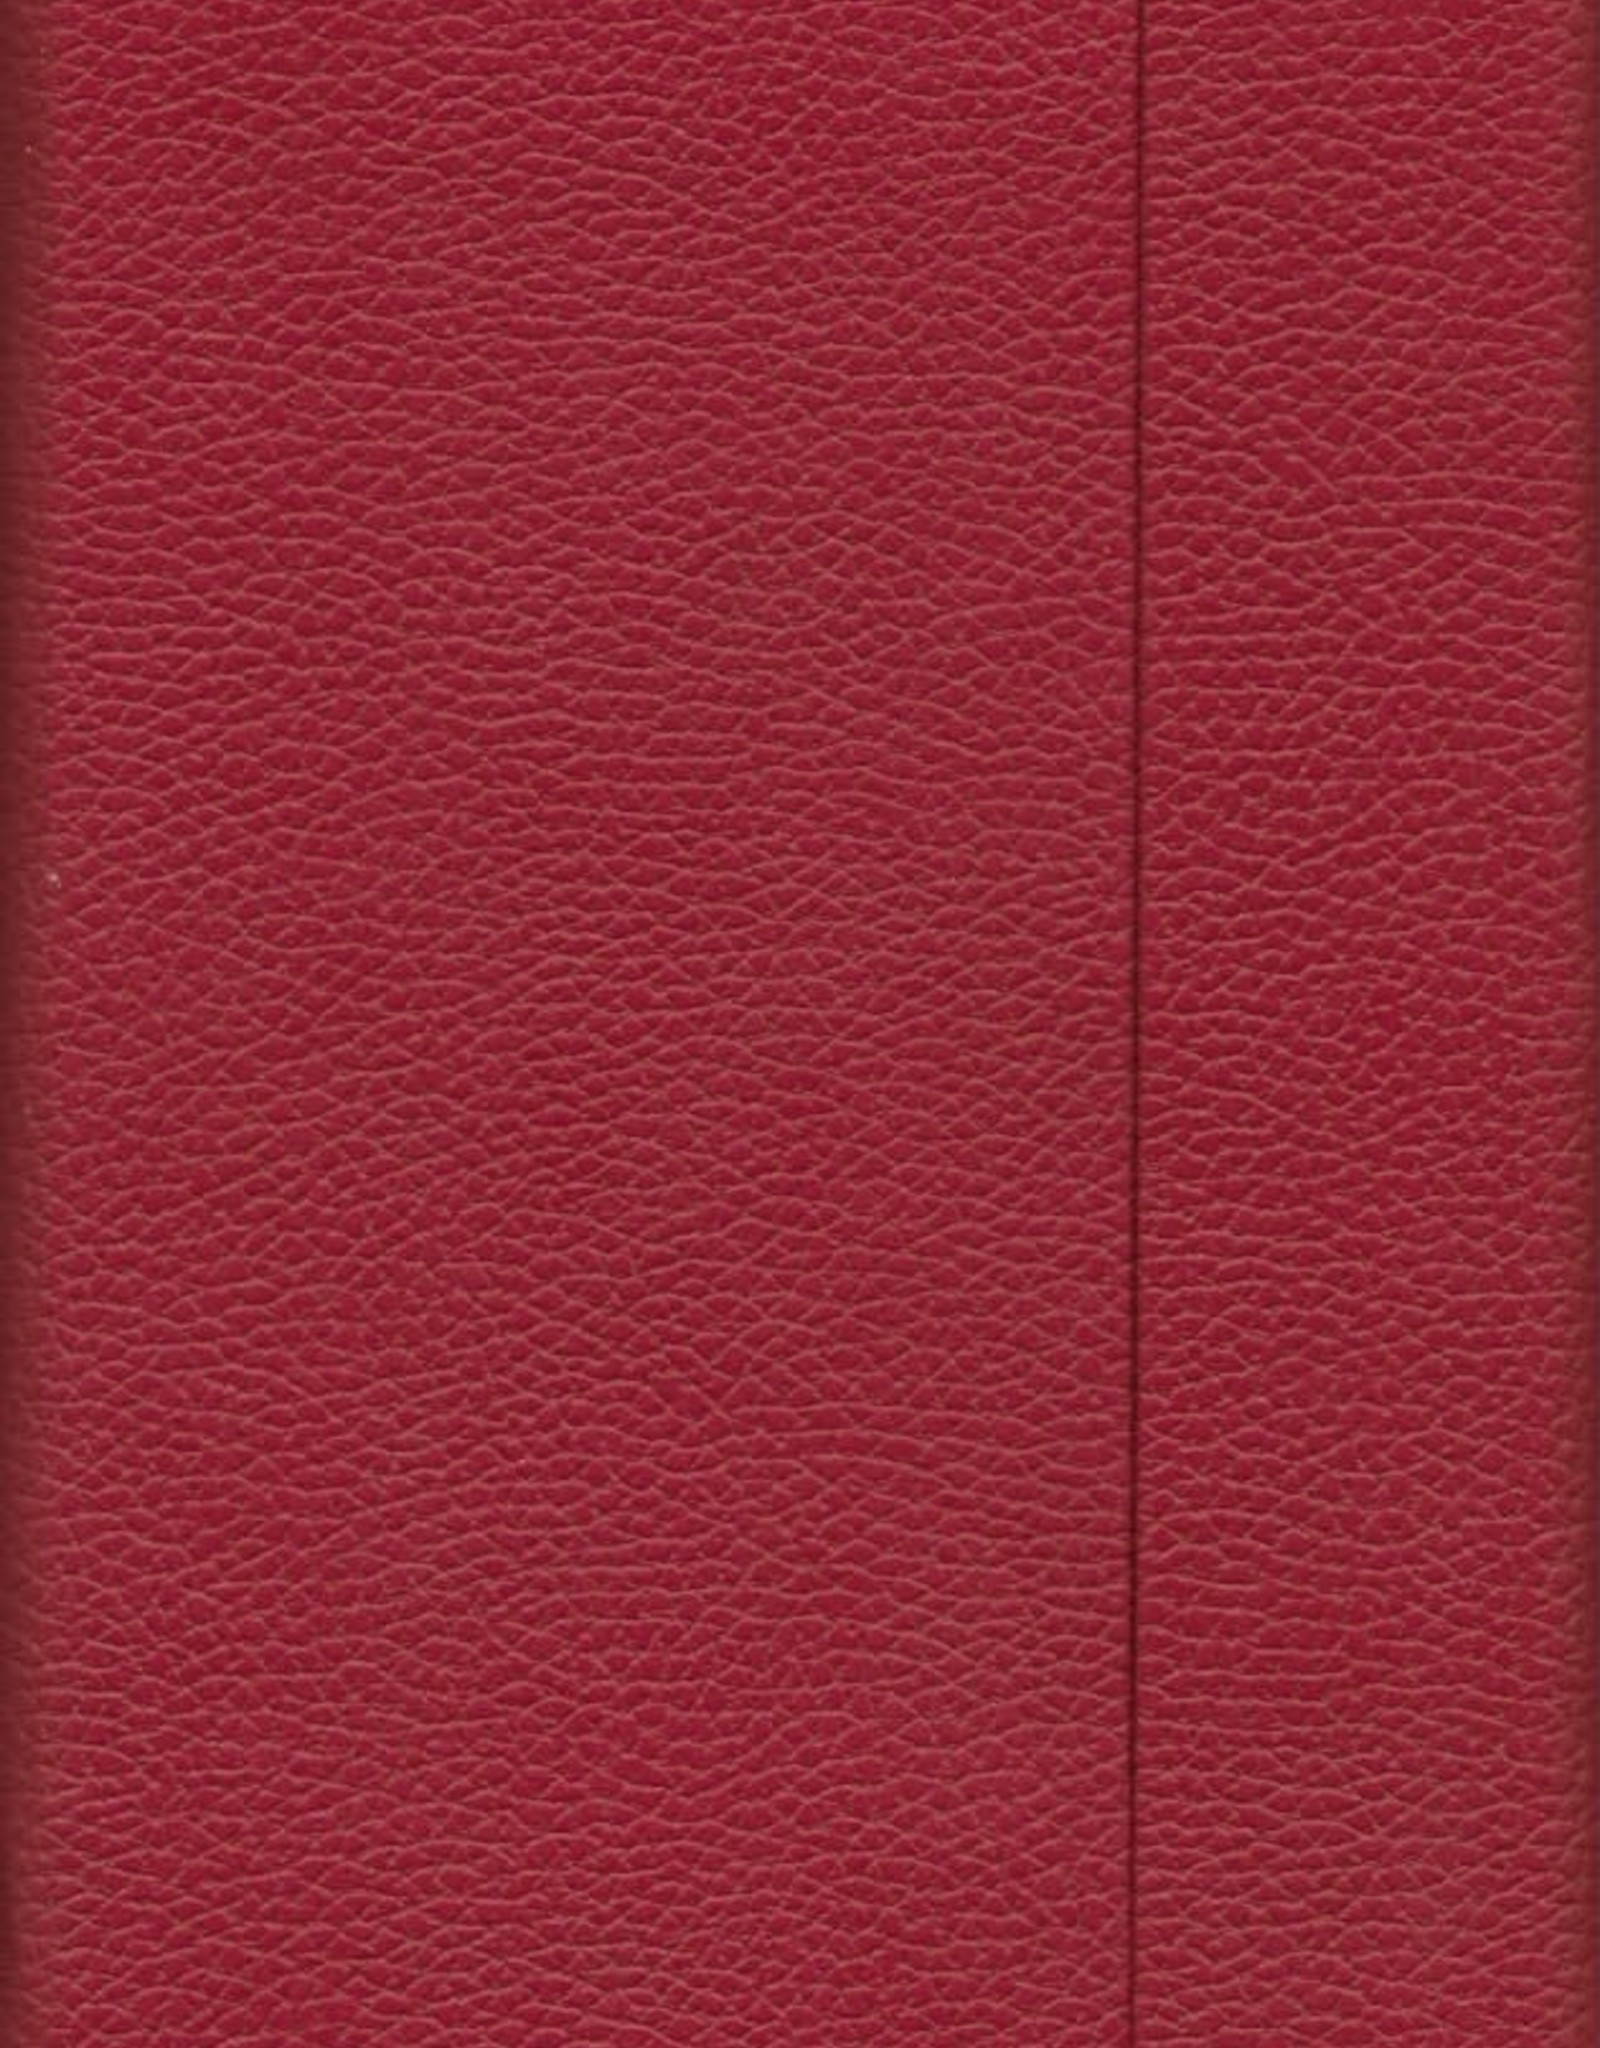 "Burgundy, Faux Leather, Journal with Blank Pages, 192 white pages, 6.25"" x 8.5"", 80gsm, Magnetic Flap"